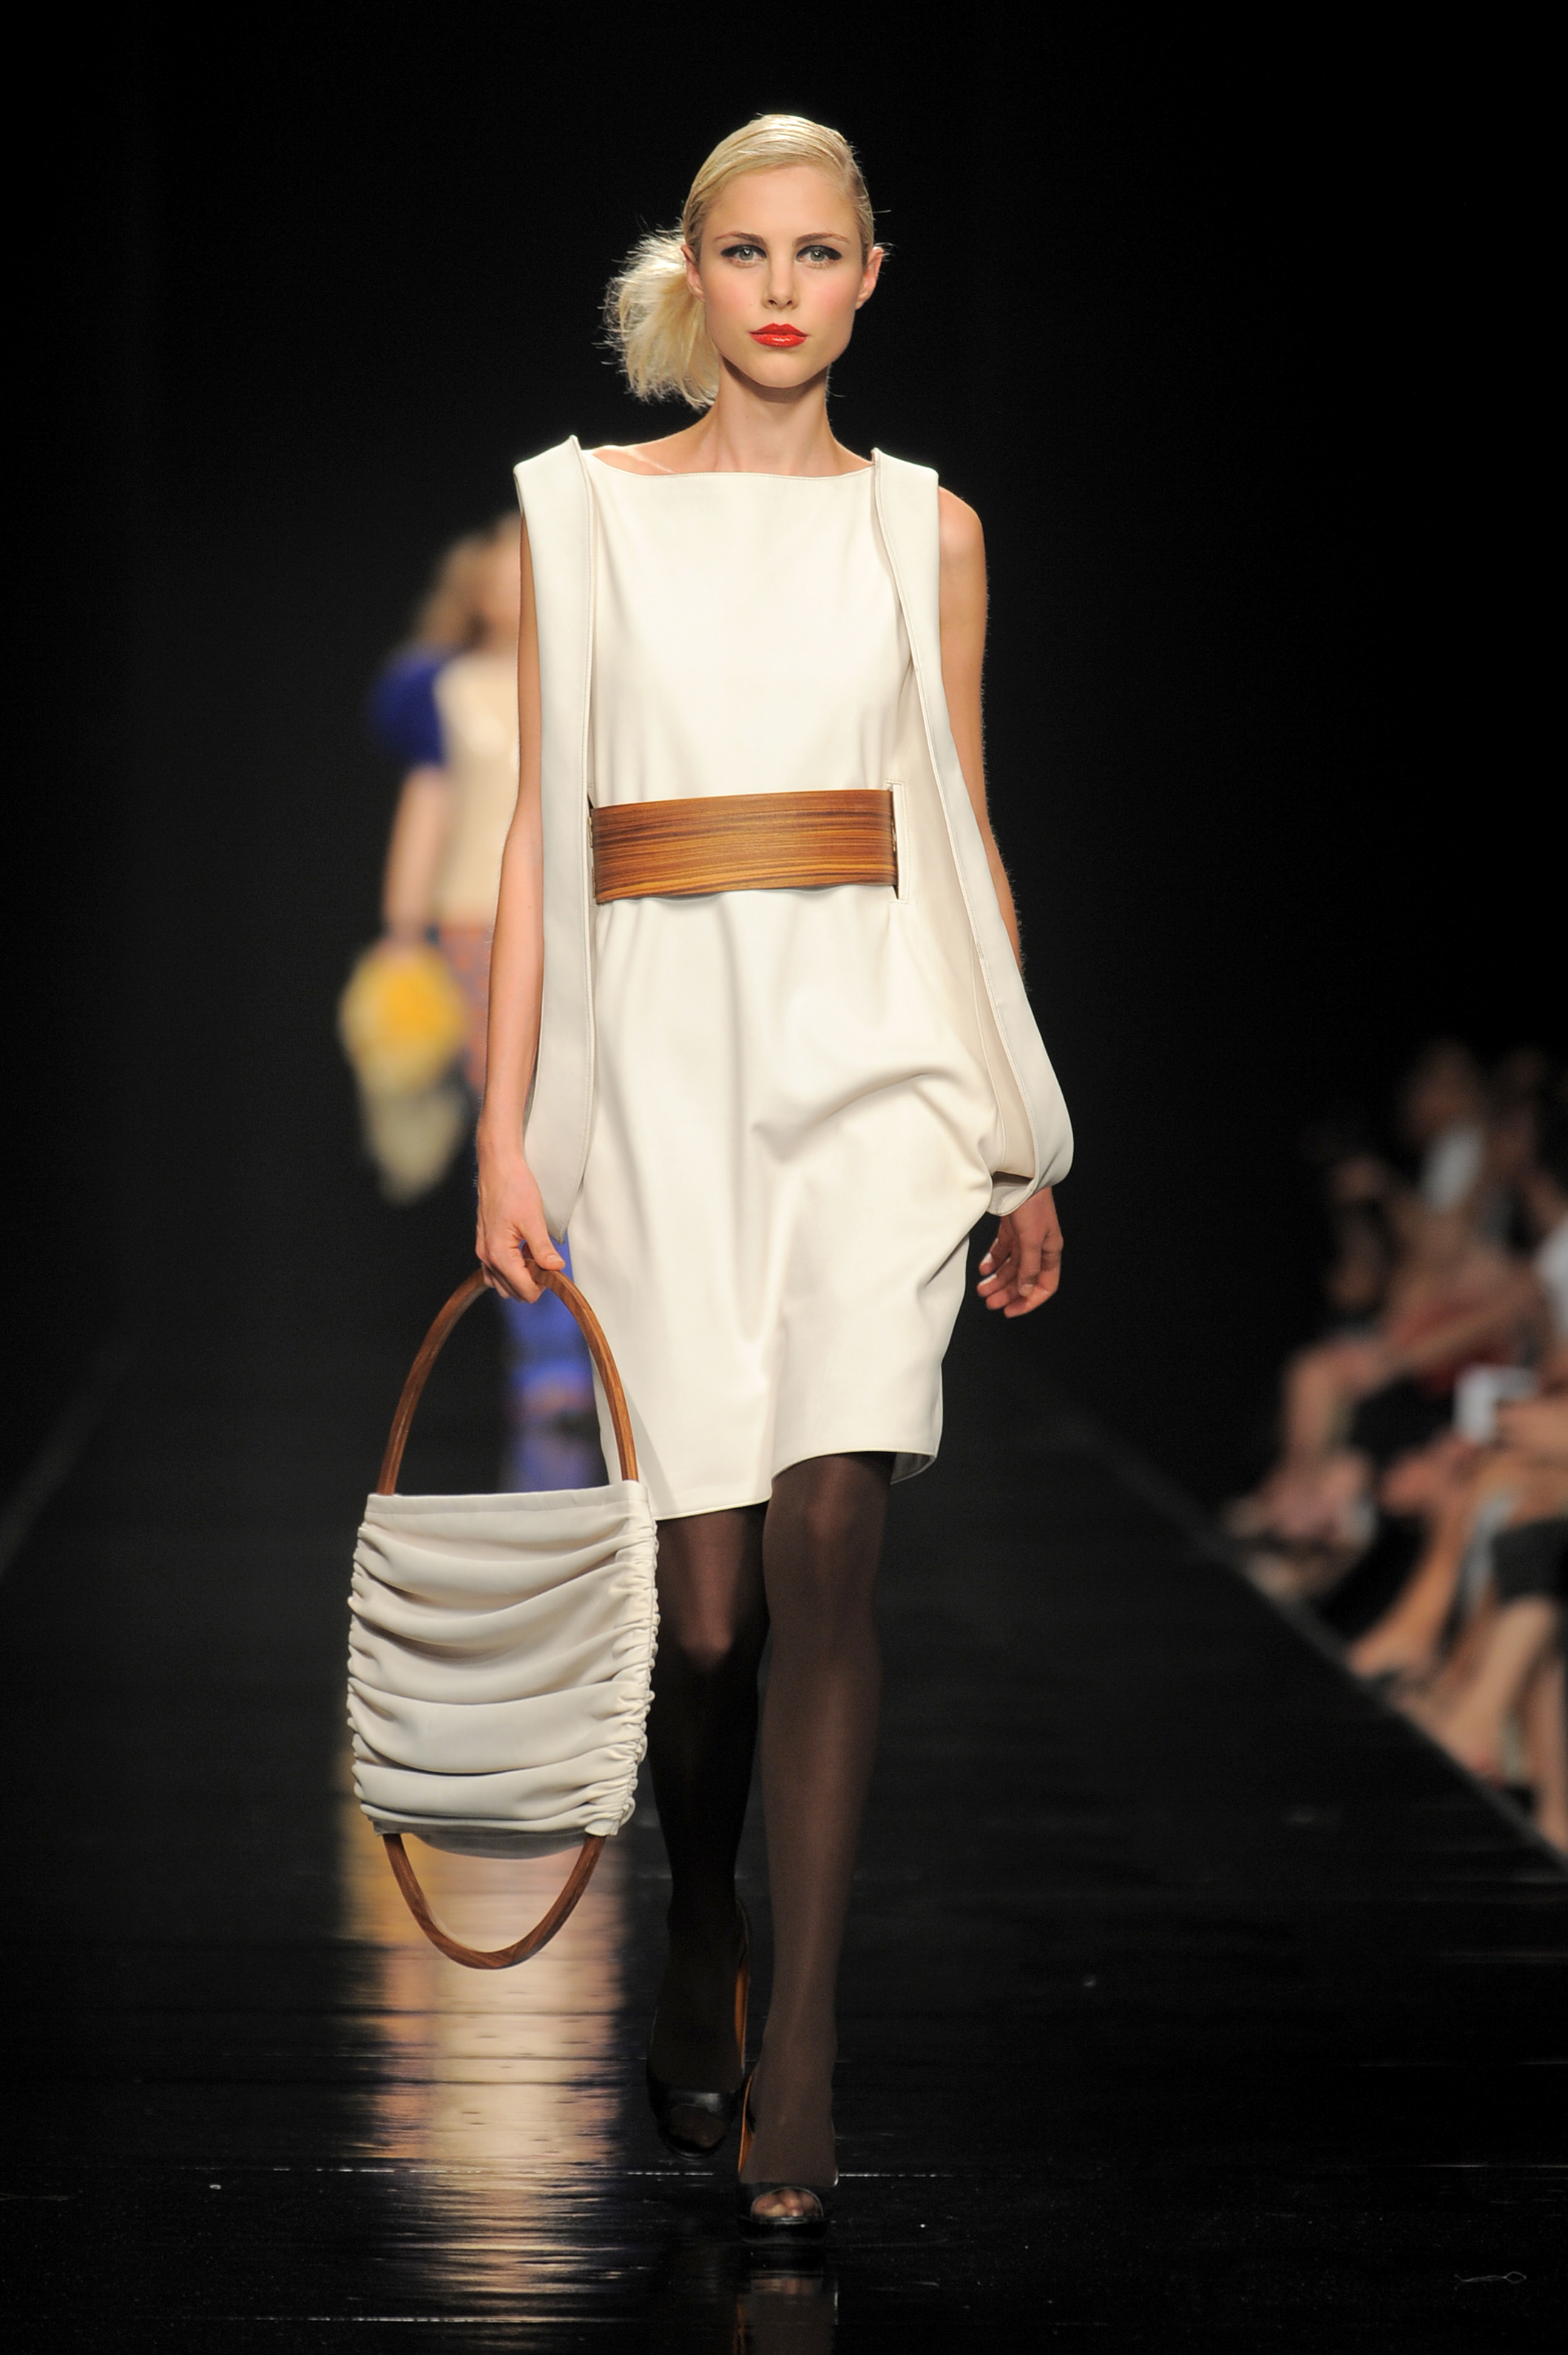 Istituto Marangoni Milan final fashion show in 2009. Veneer belt and reindeer leather dress.